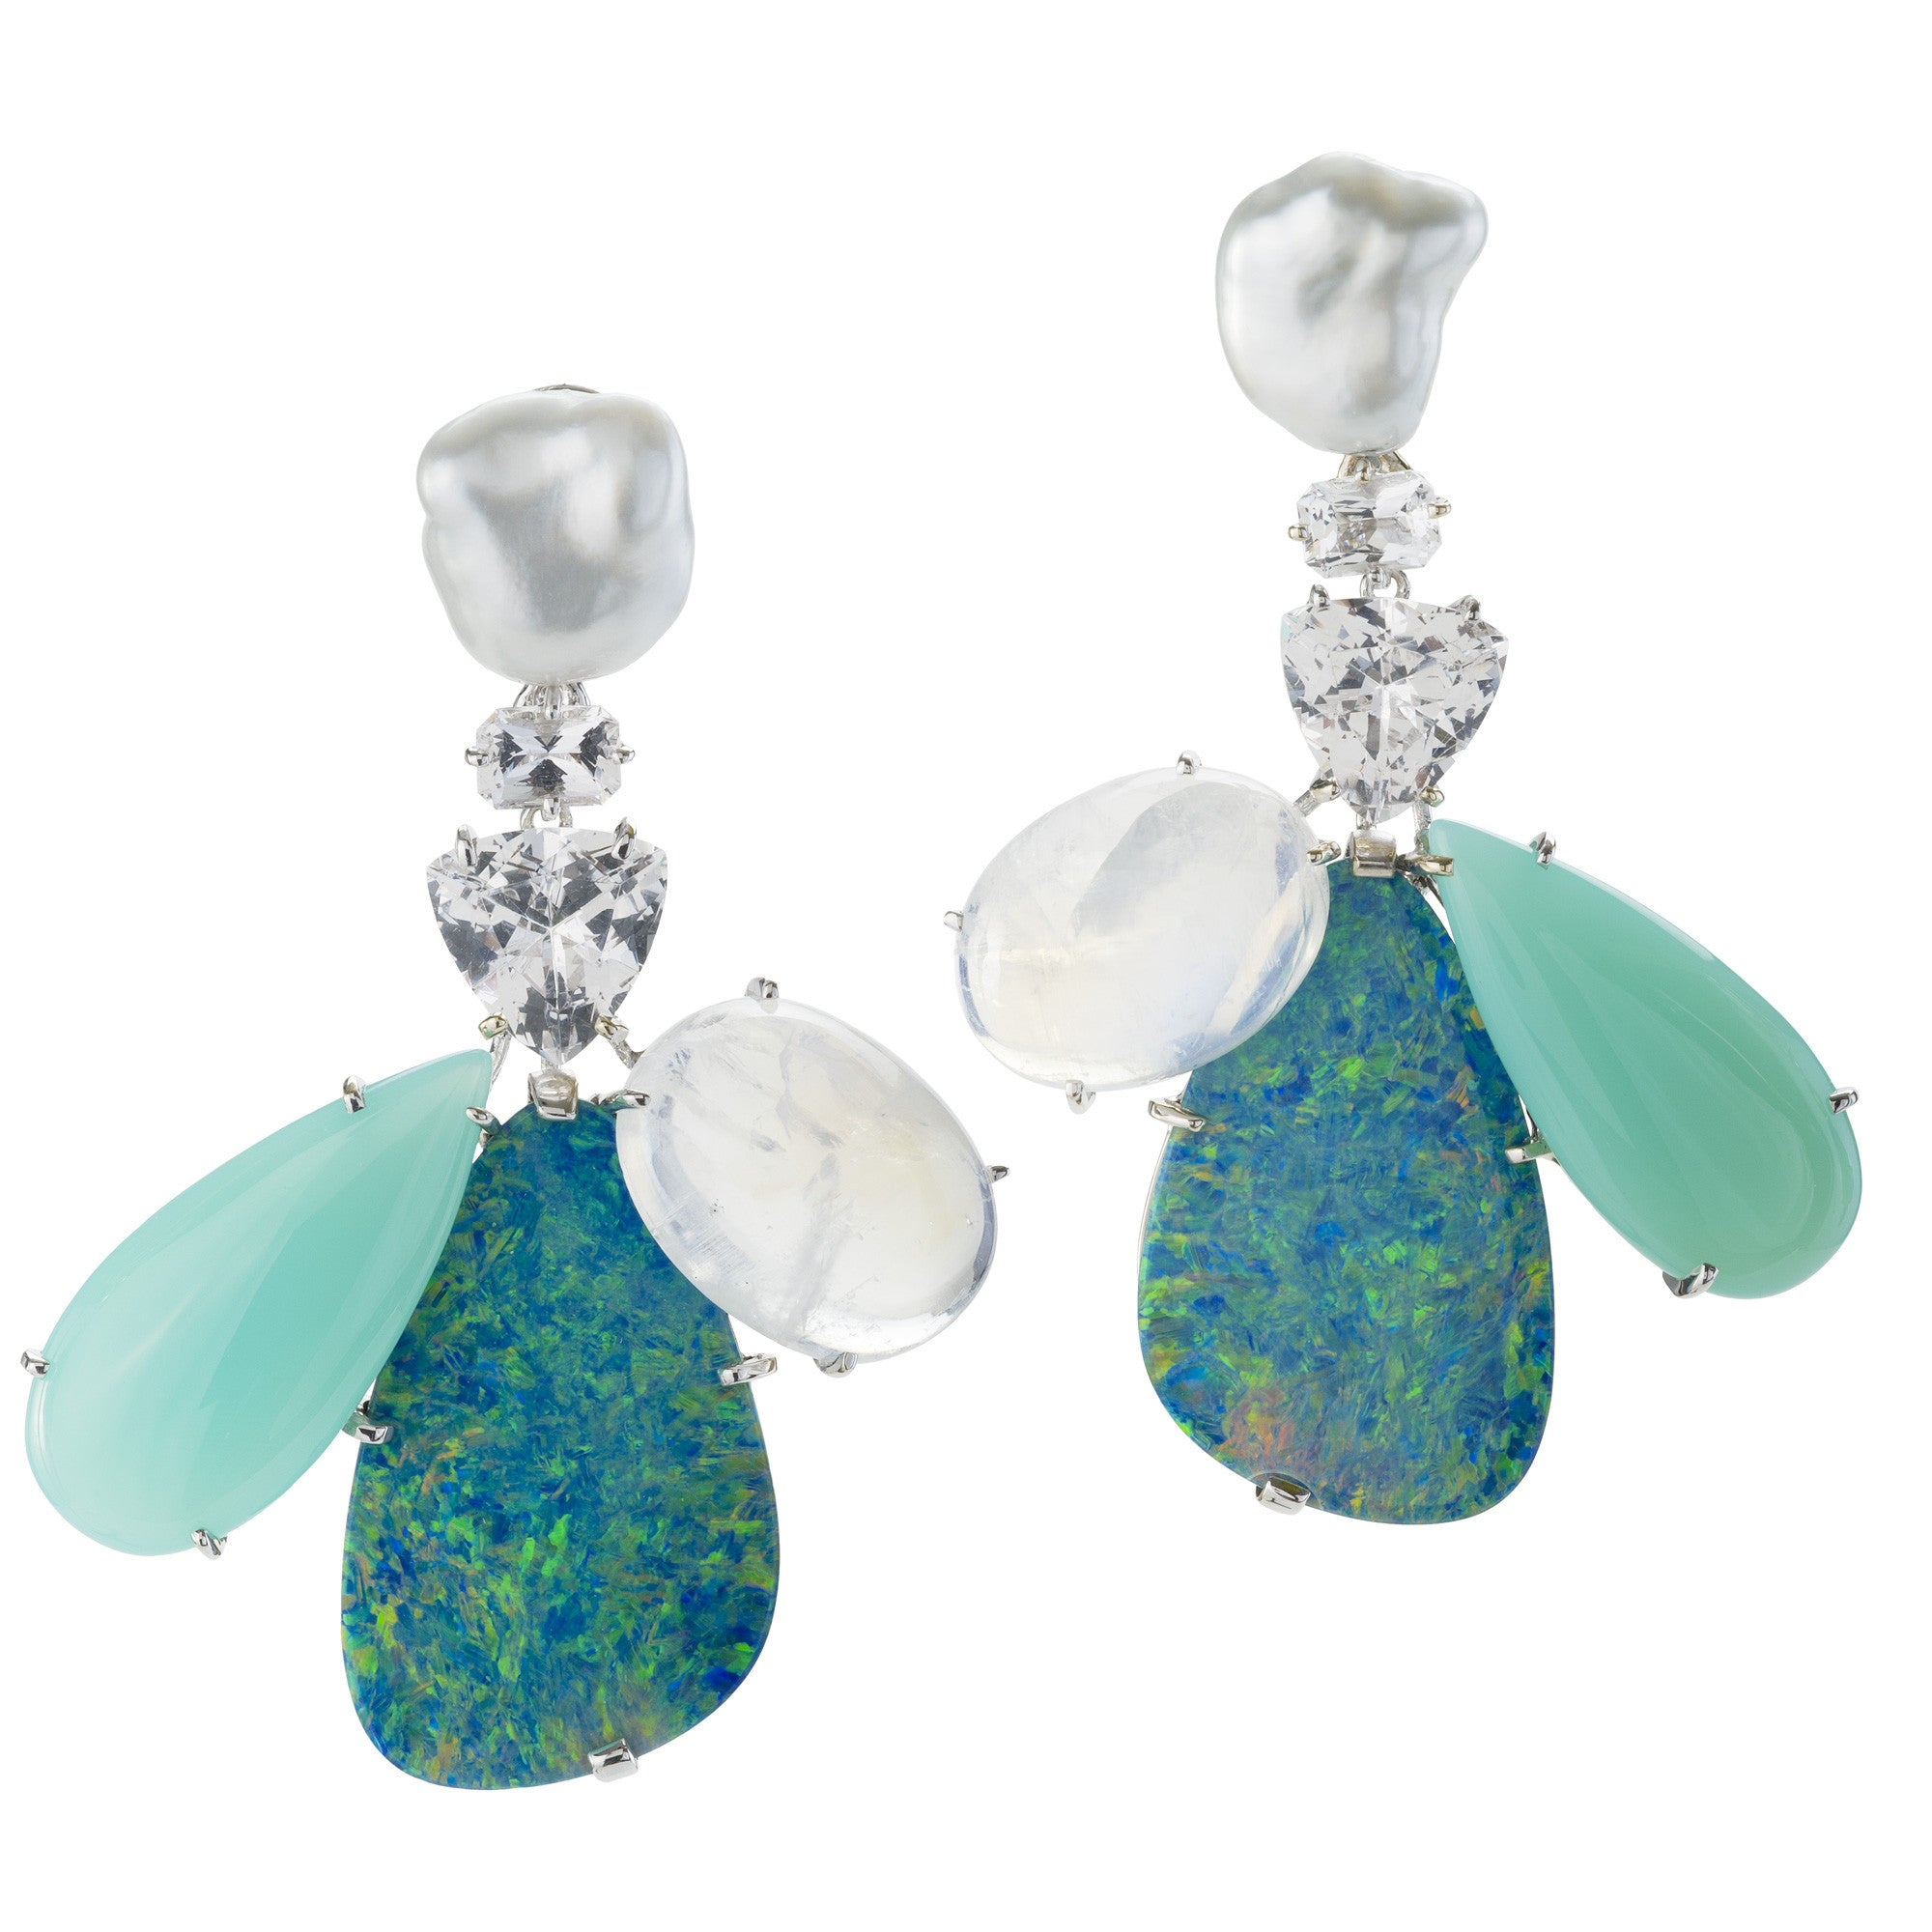 OVERLAP V opal earrings